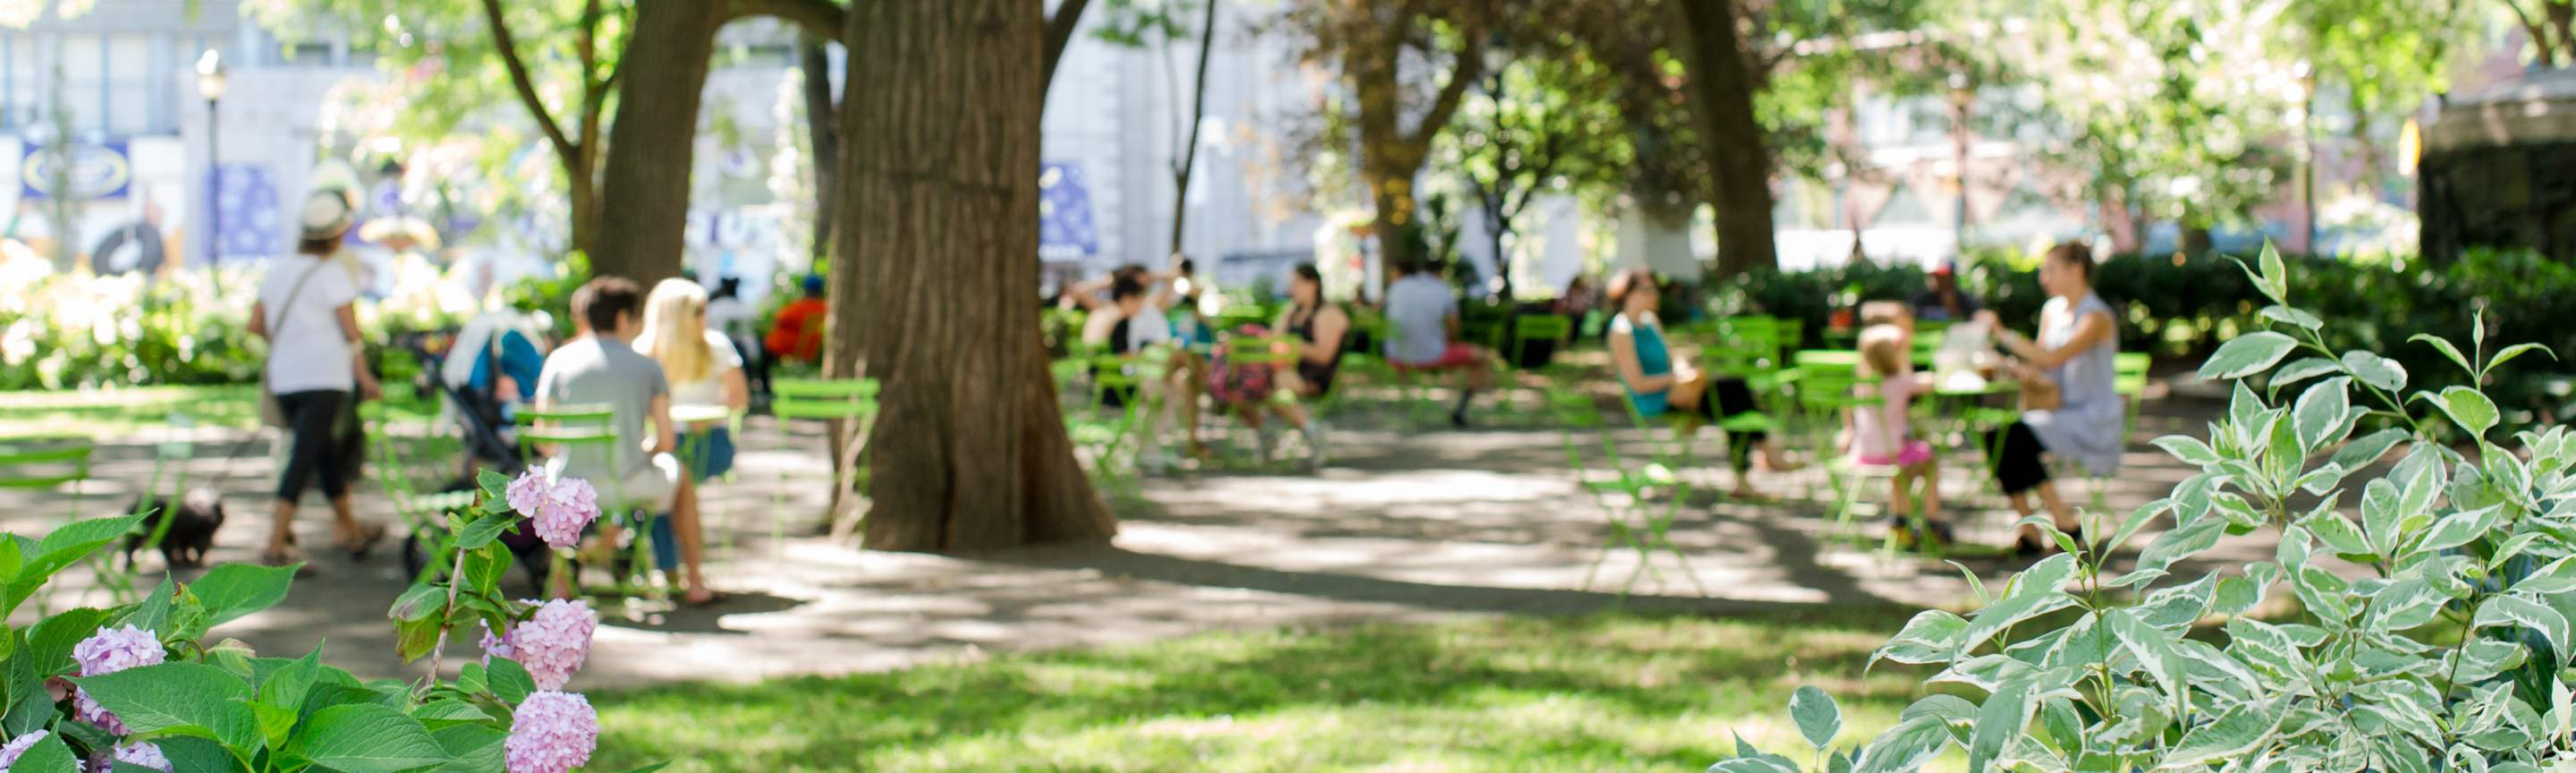 Banner Photo: Parks & Public Spaces